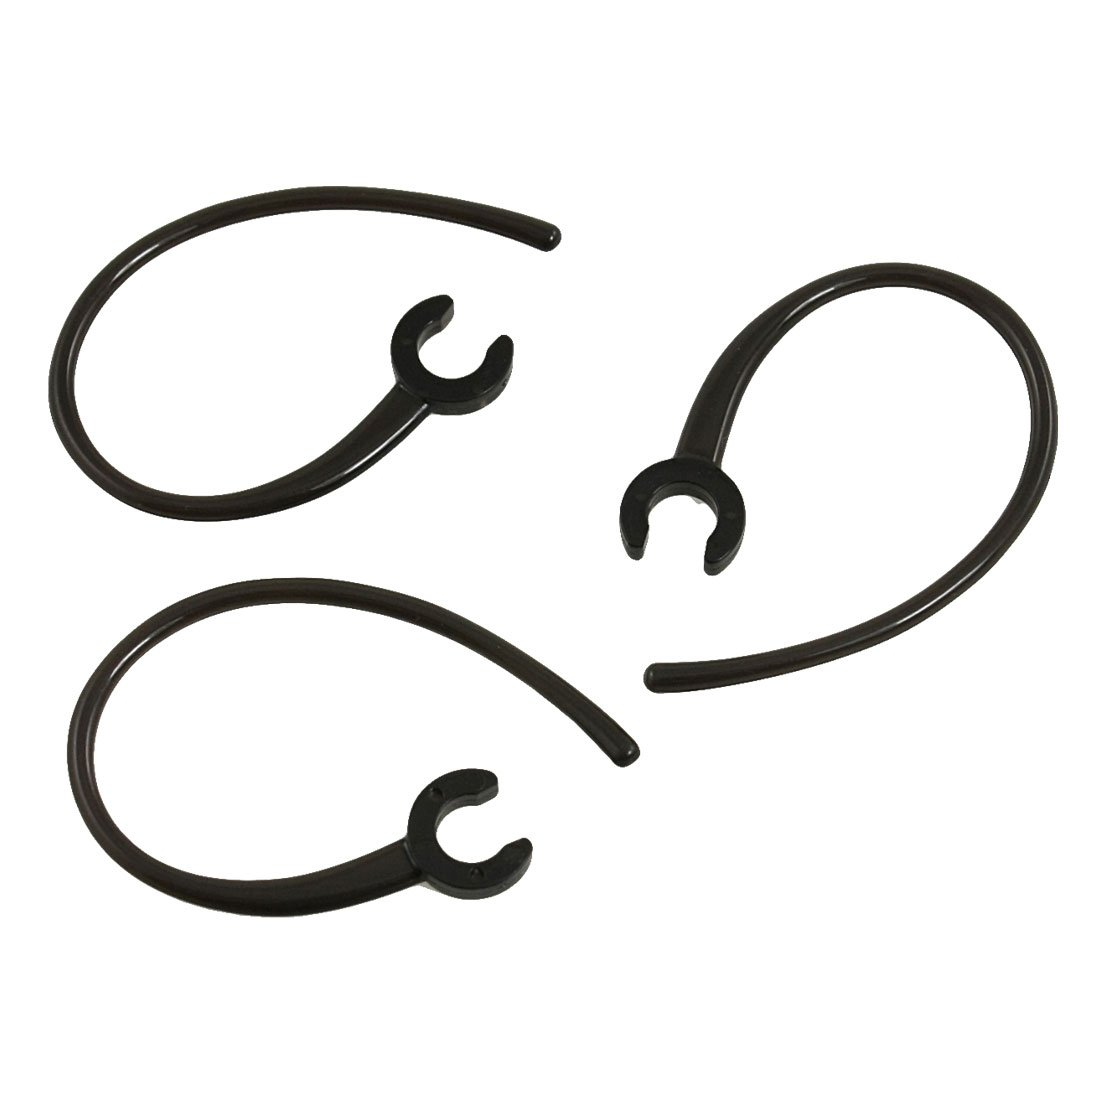 New 3pc Ear Hook Loop Clip Replacement Bluetooth Repair Parts One Size fits most 6mm Wholesale Dropshipping